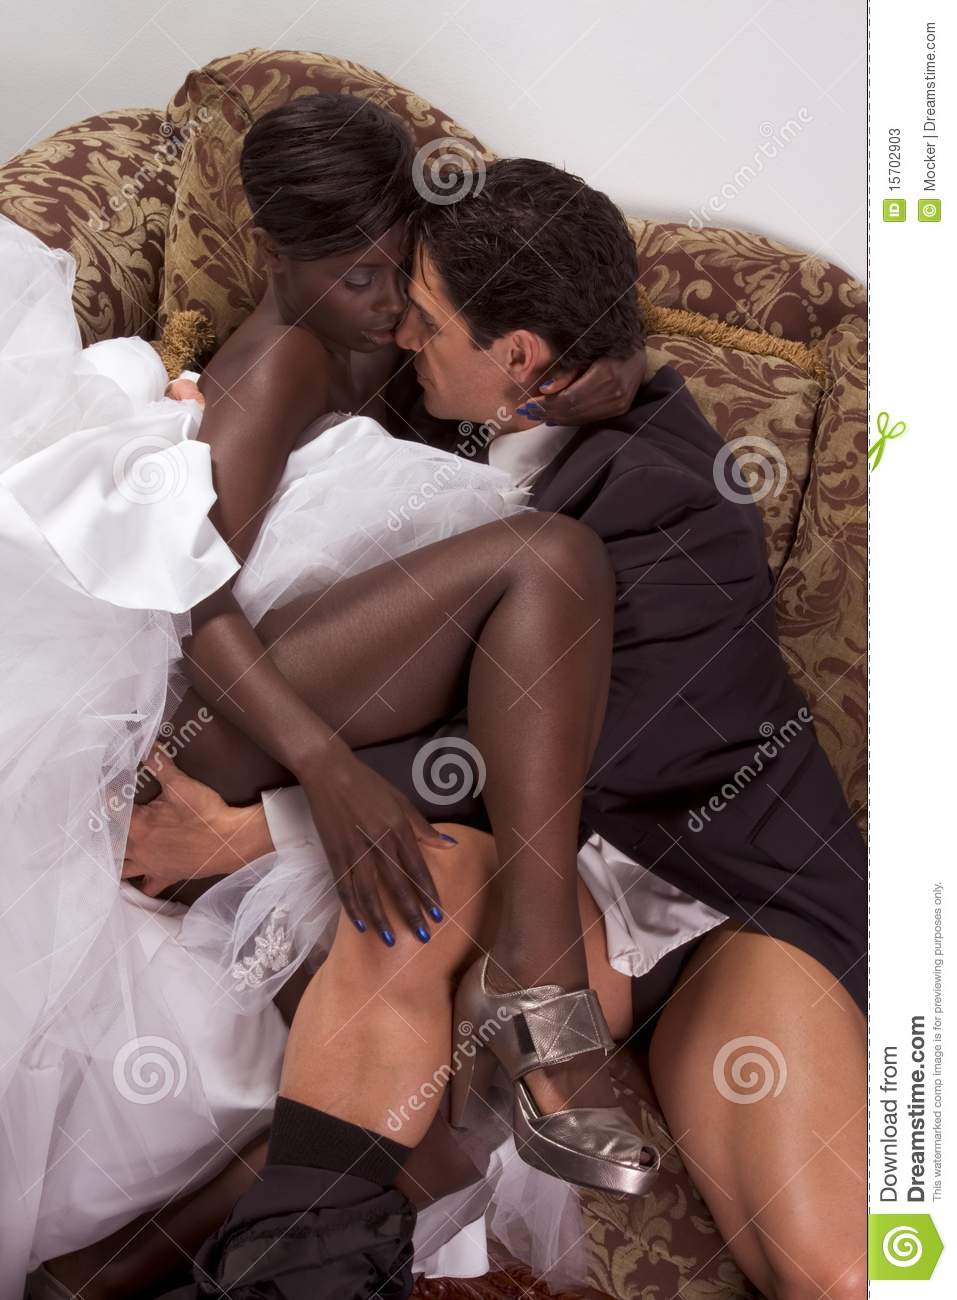 interracial sex sex fkk